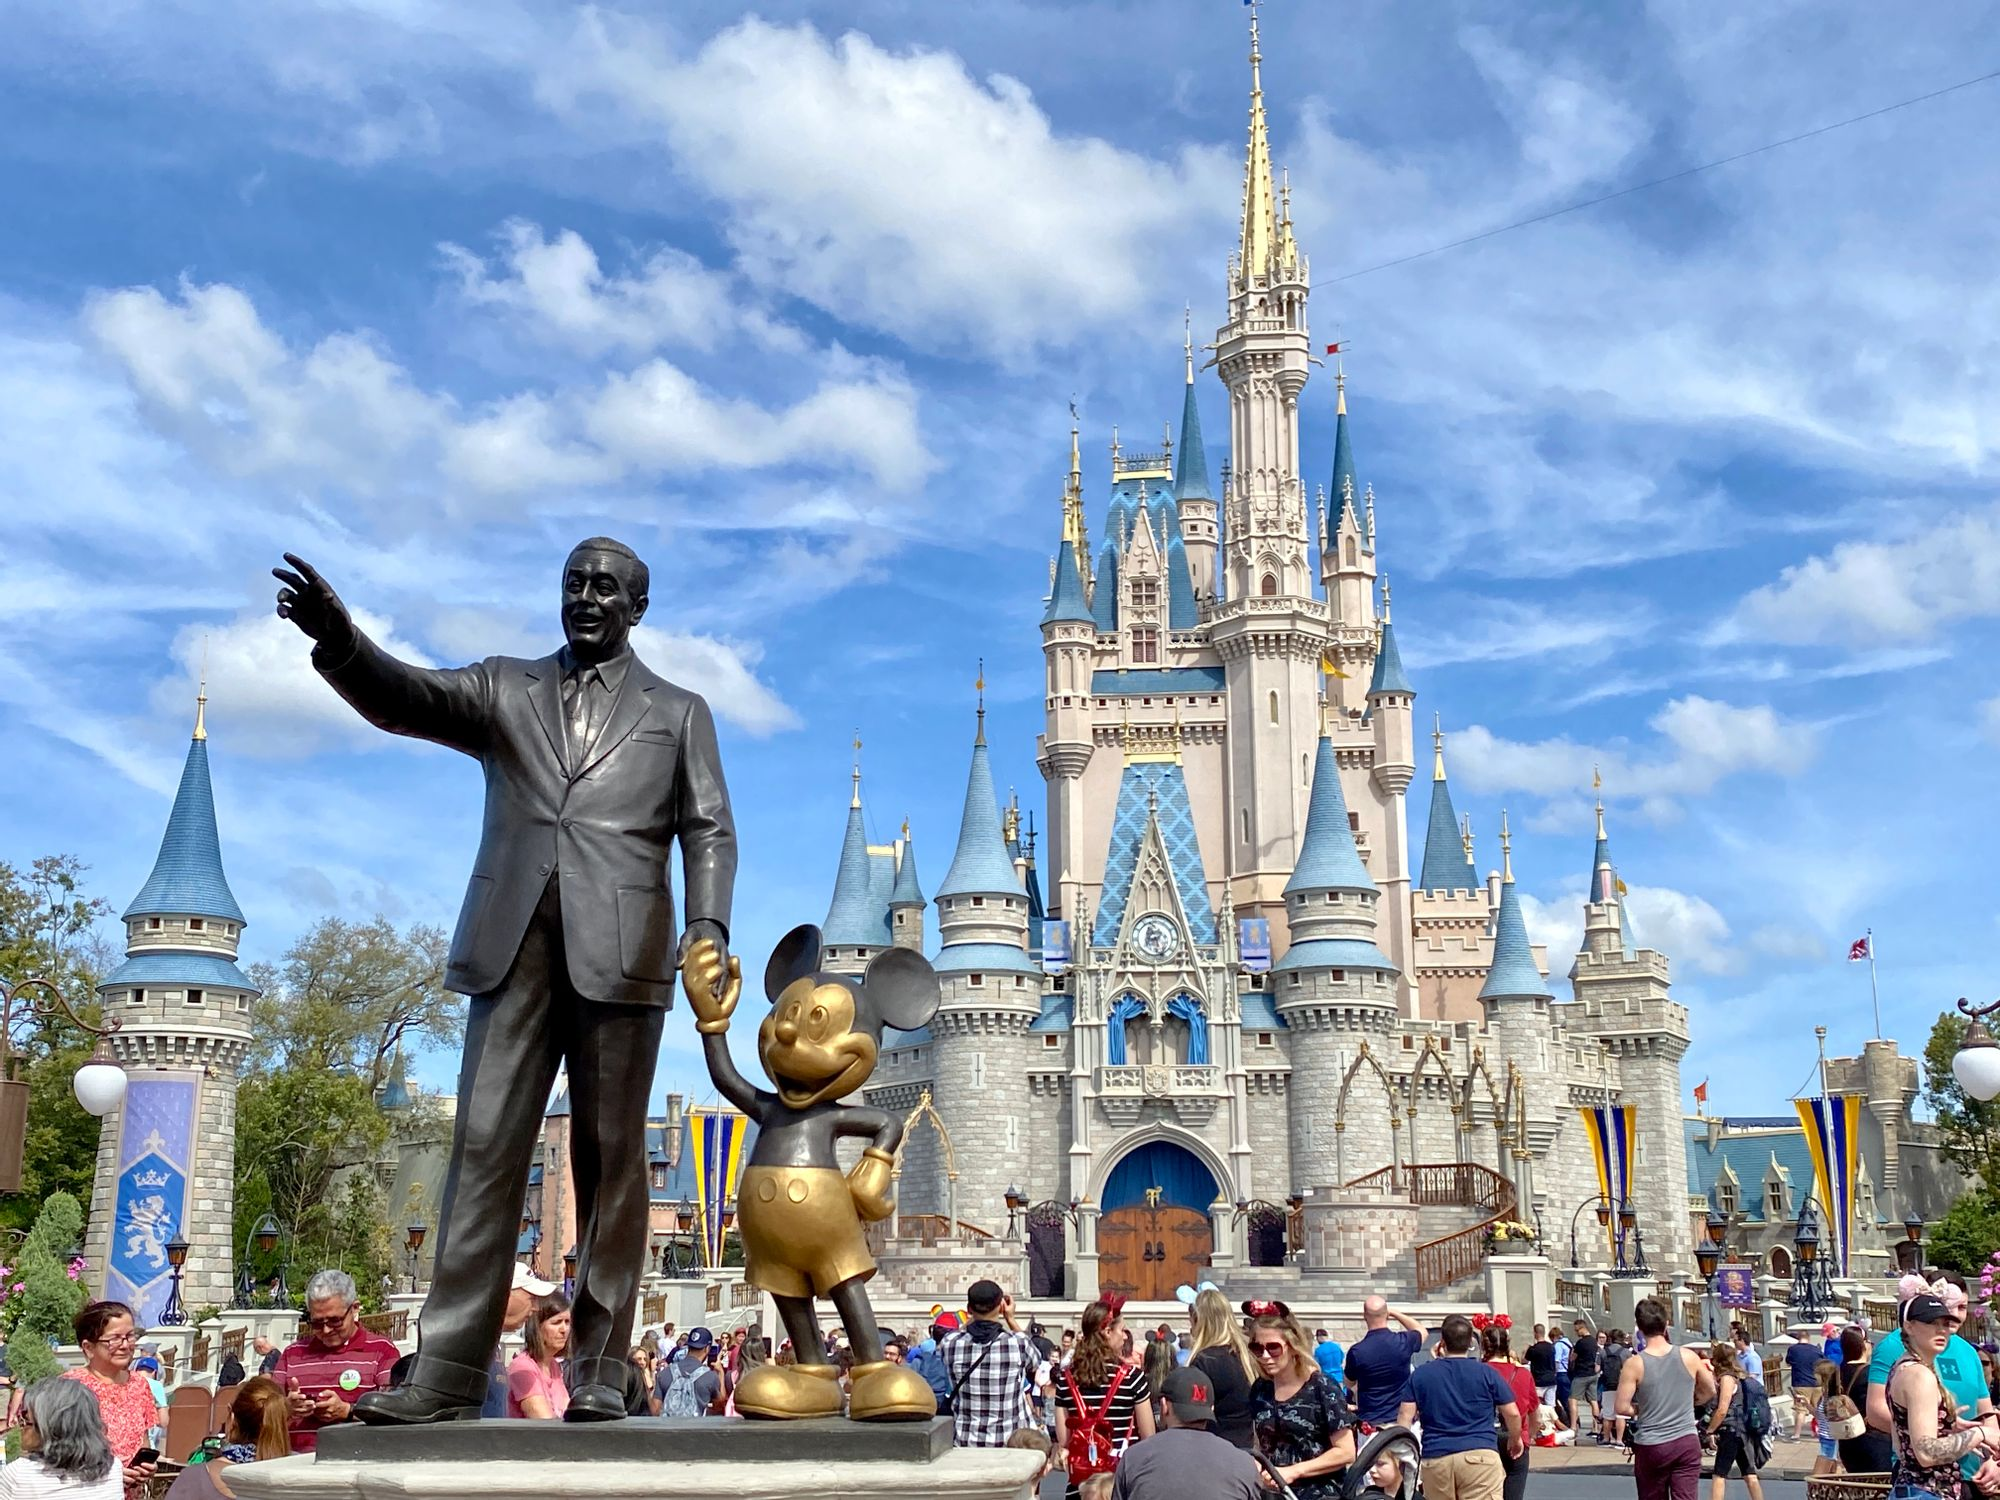 Walt Disney World Releases Updated Information on Coronavirus Closure,  Including Annual Pass Extensions and Refund Policies - WDW News Today